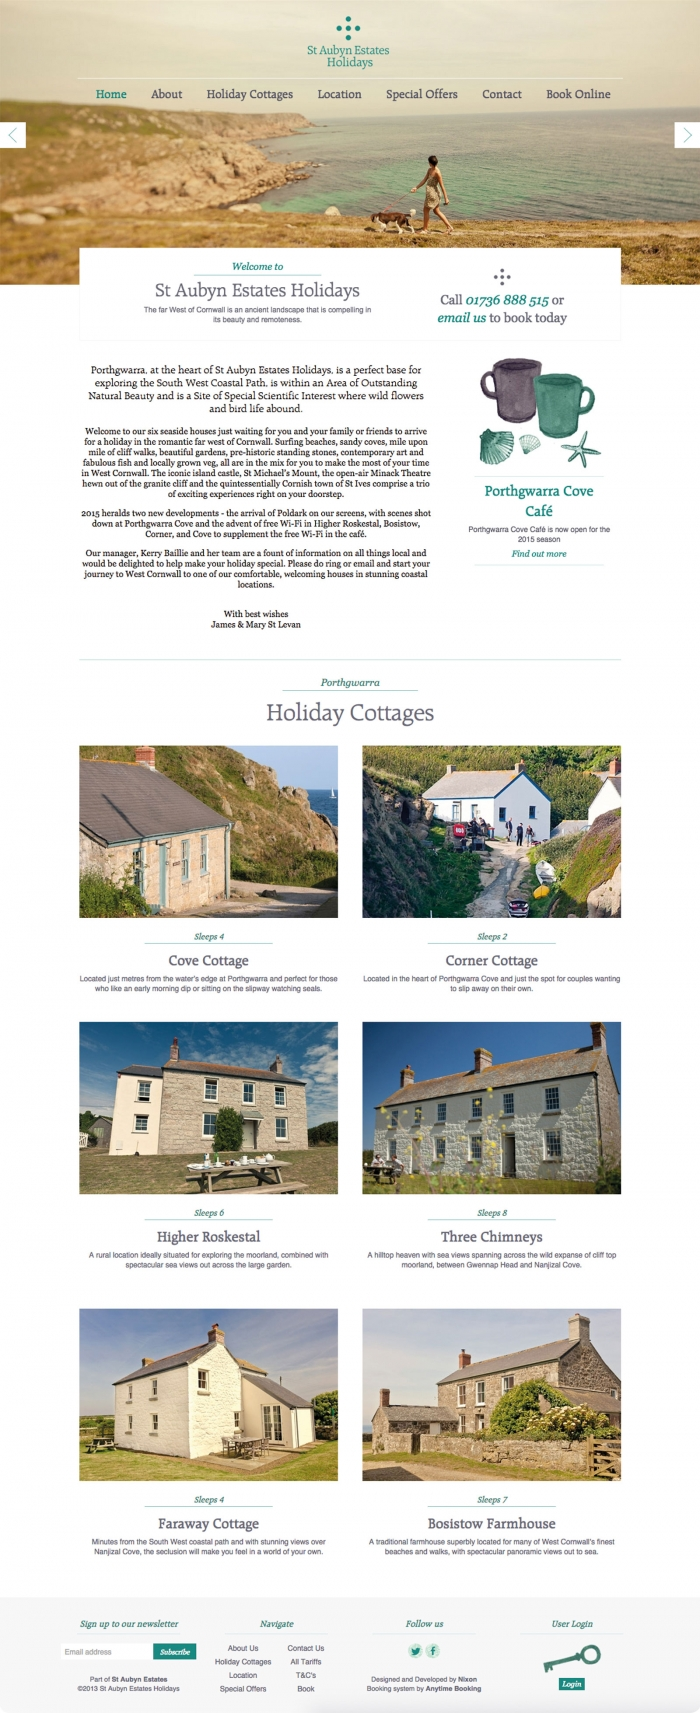 The St Aubyn Estates Holidays website homepage.